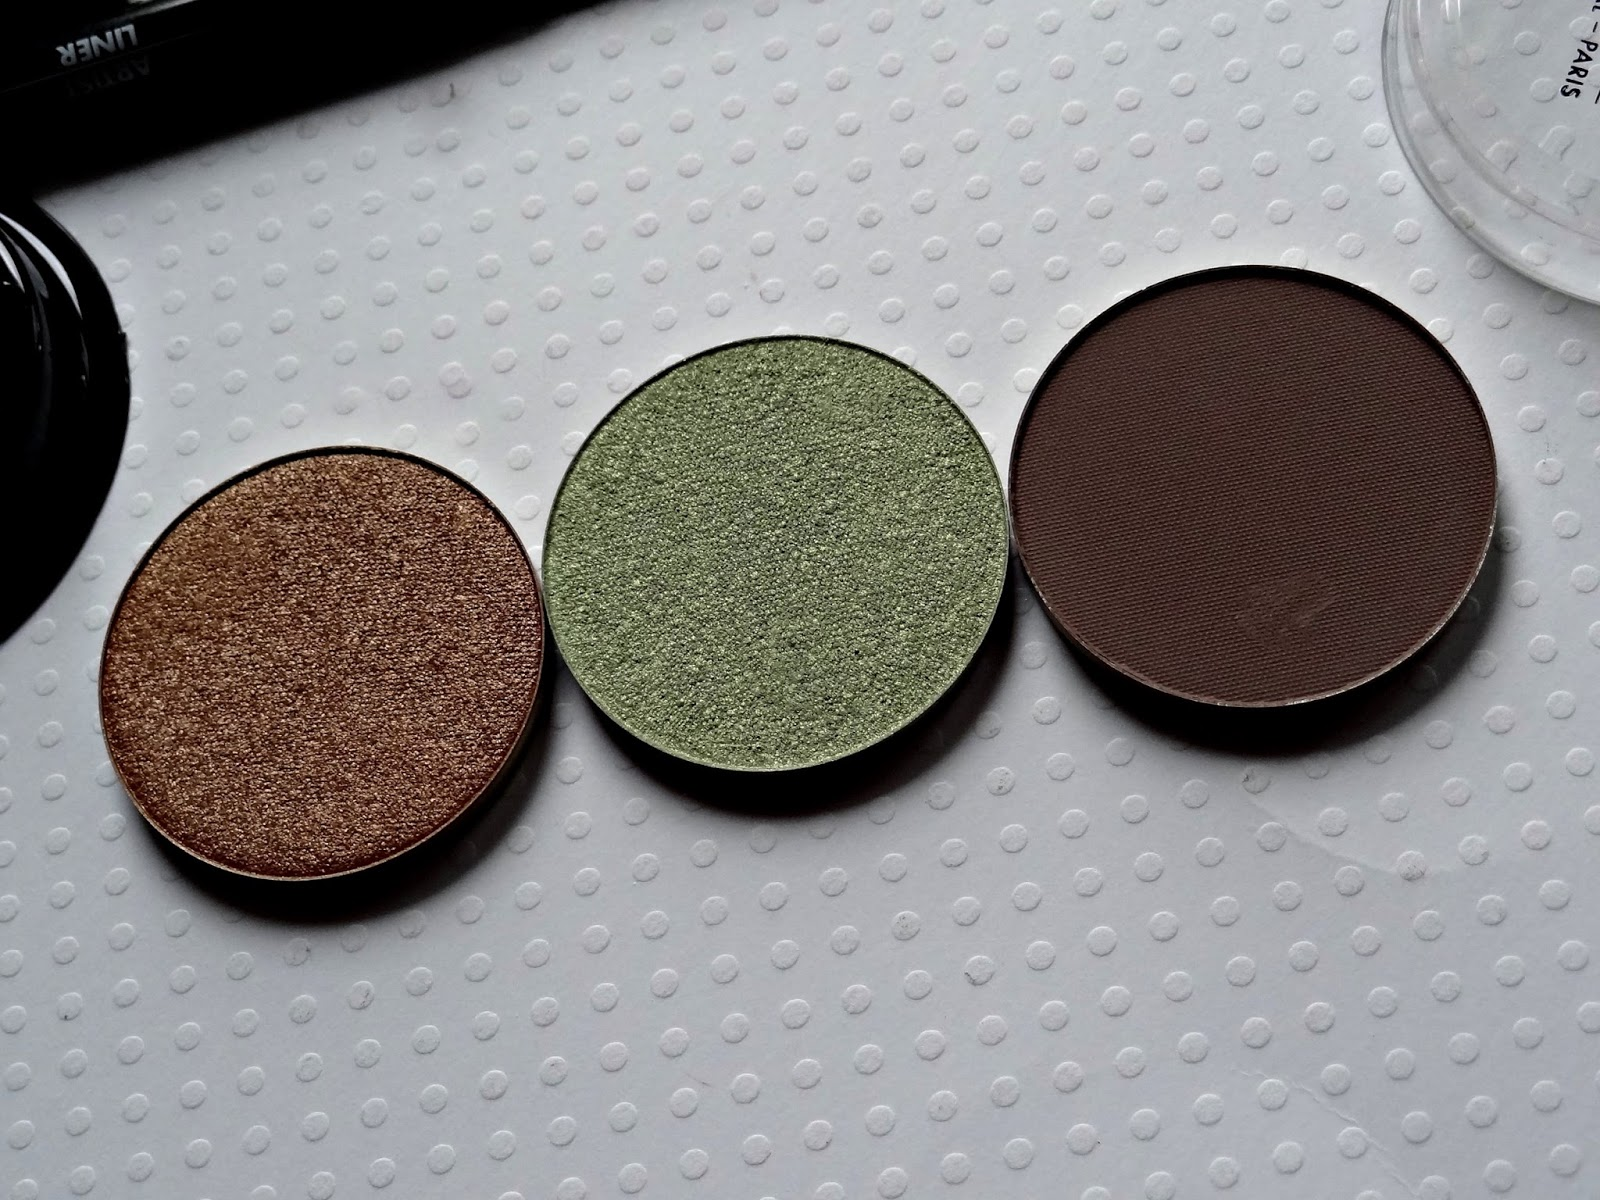 make up for ever artist eyeshadows in i662, m558, i330 Review, Photos & Swatches